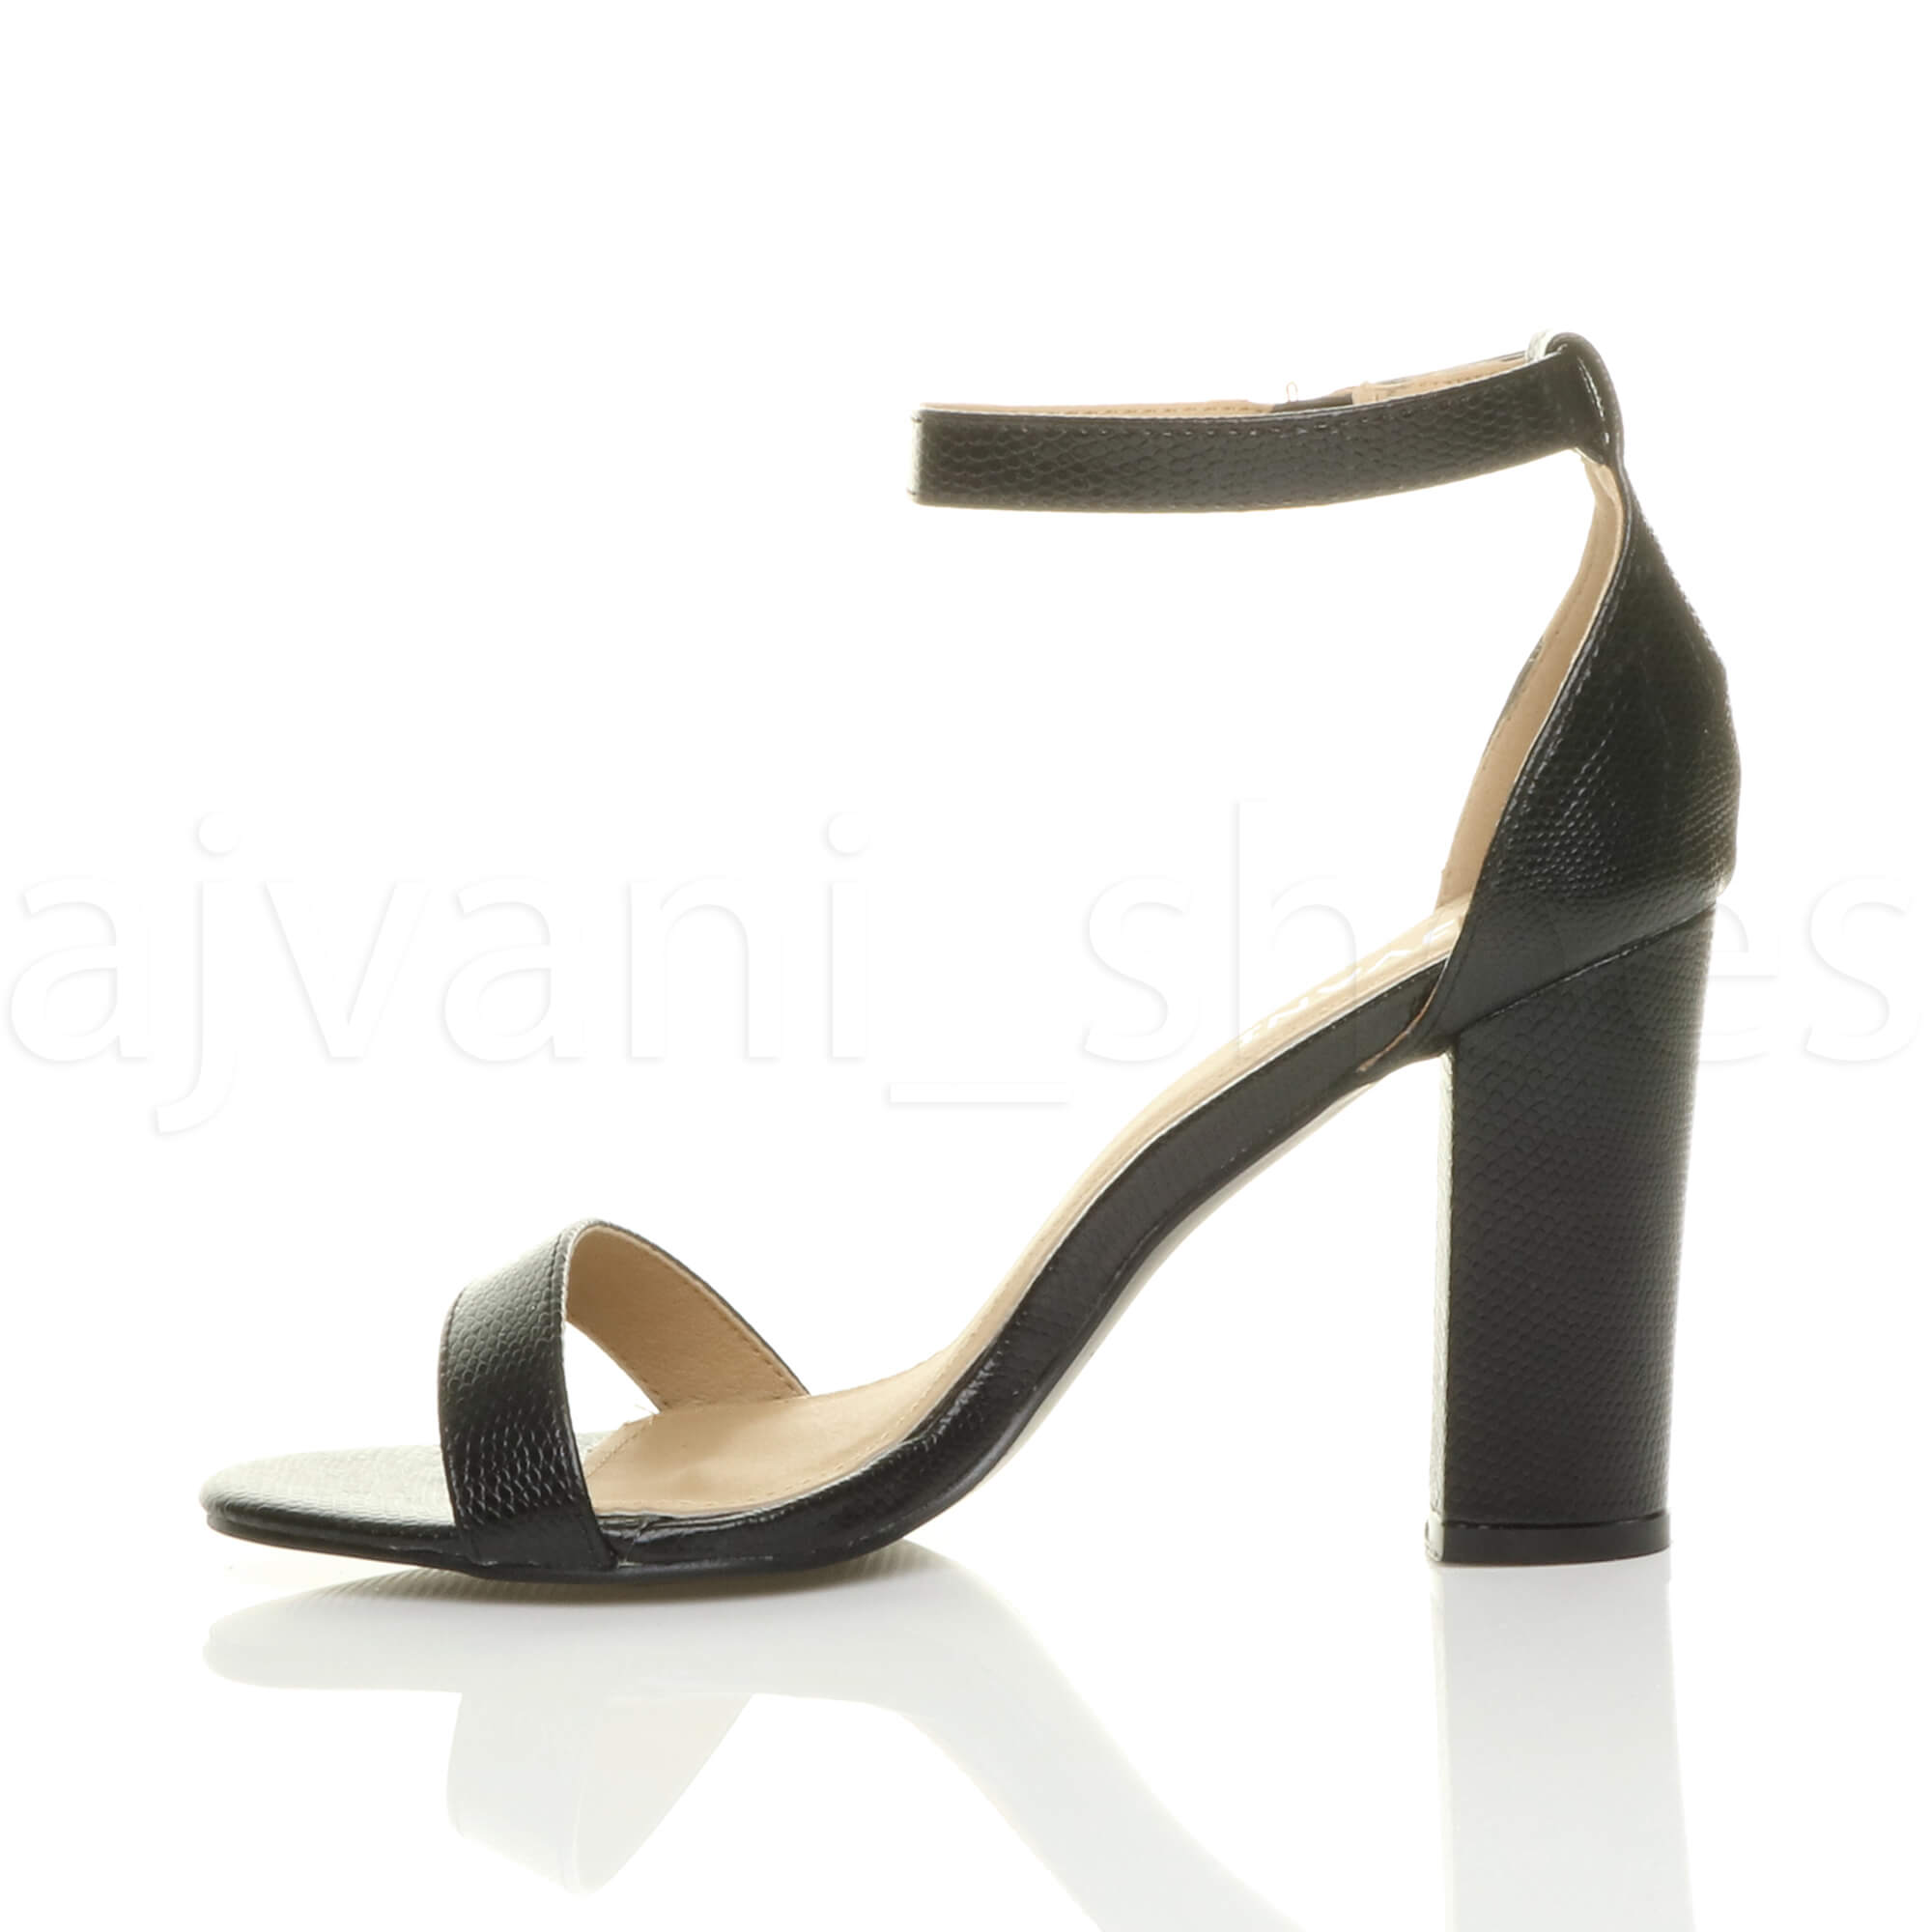 WOMENS-LADIES-BLOCK-HIGH-HEEL-ANKLE-STRAP-PEEP-TOE-STRAPPY-SANDALS-SHOES-SIZE thumbnail 11